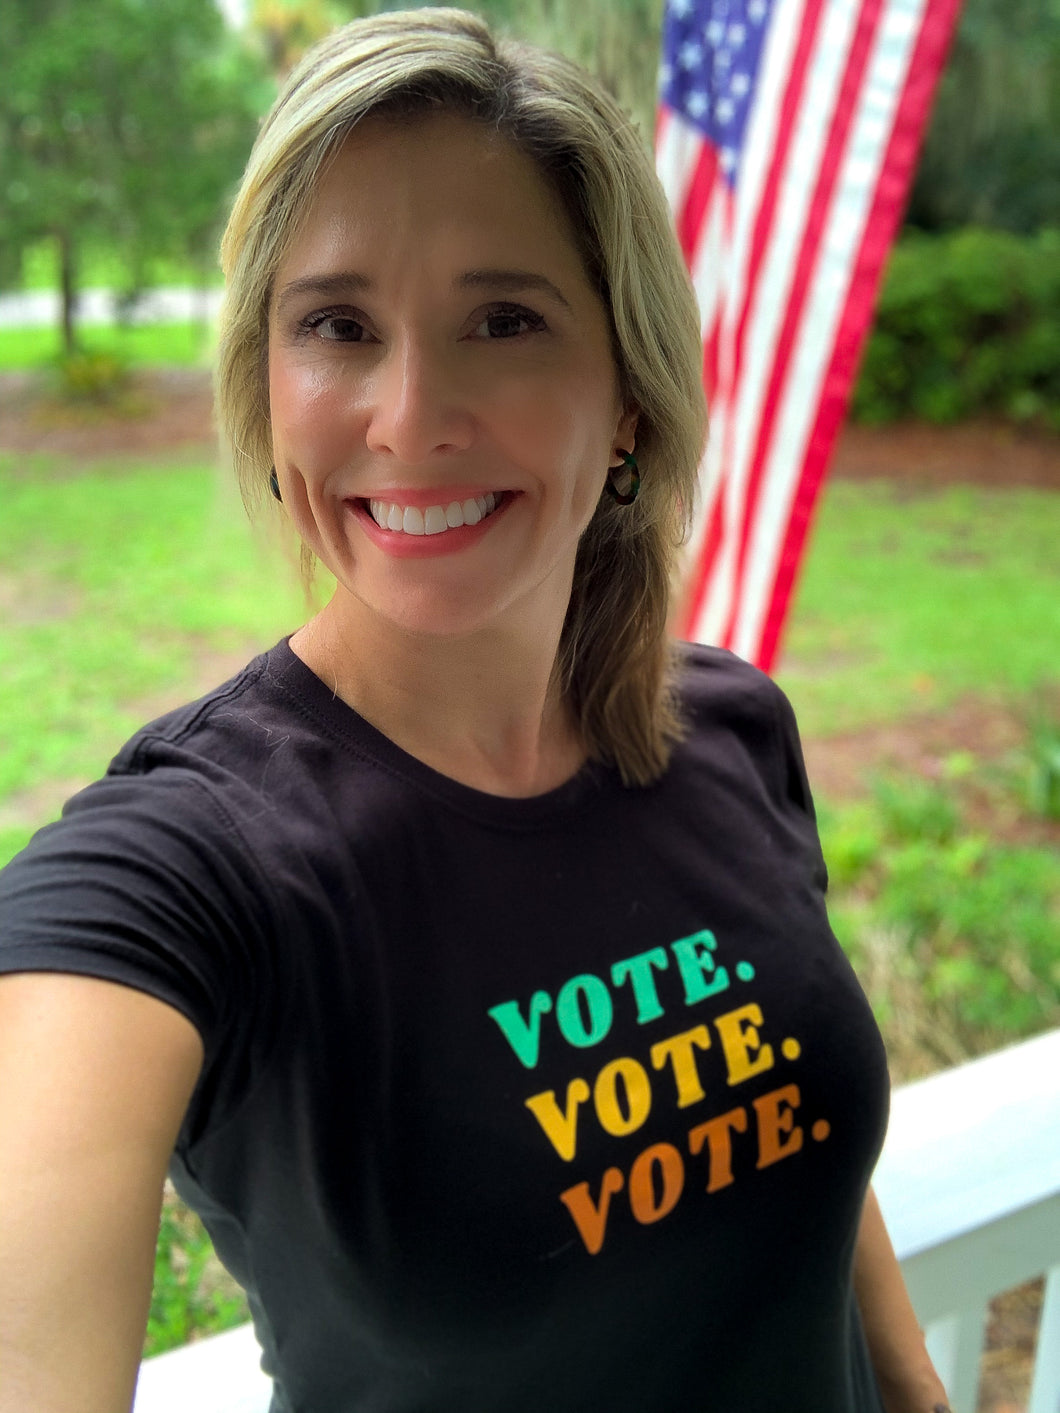 woman wearing a vote t-shirt